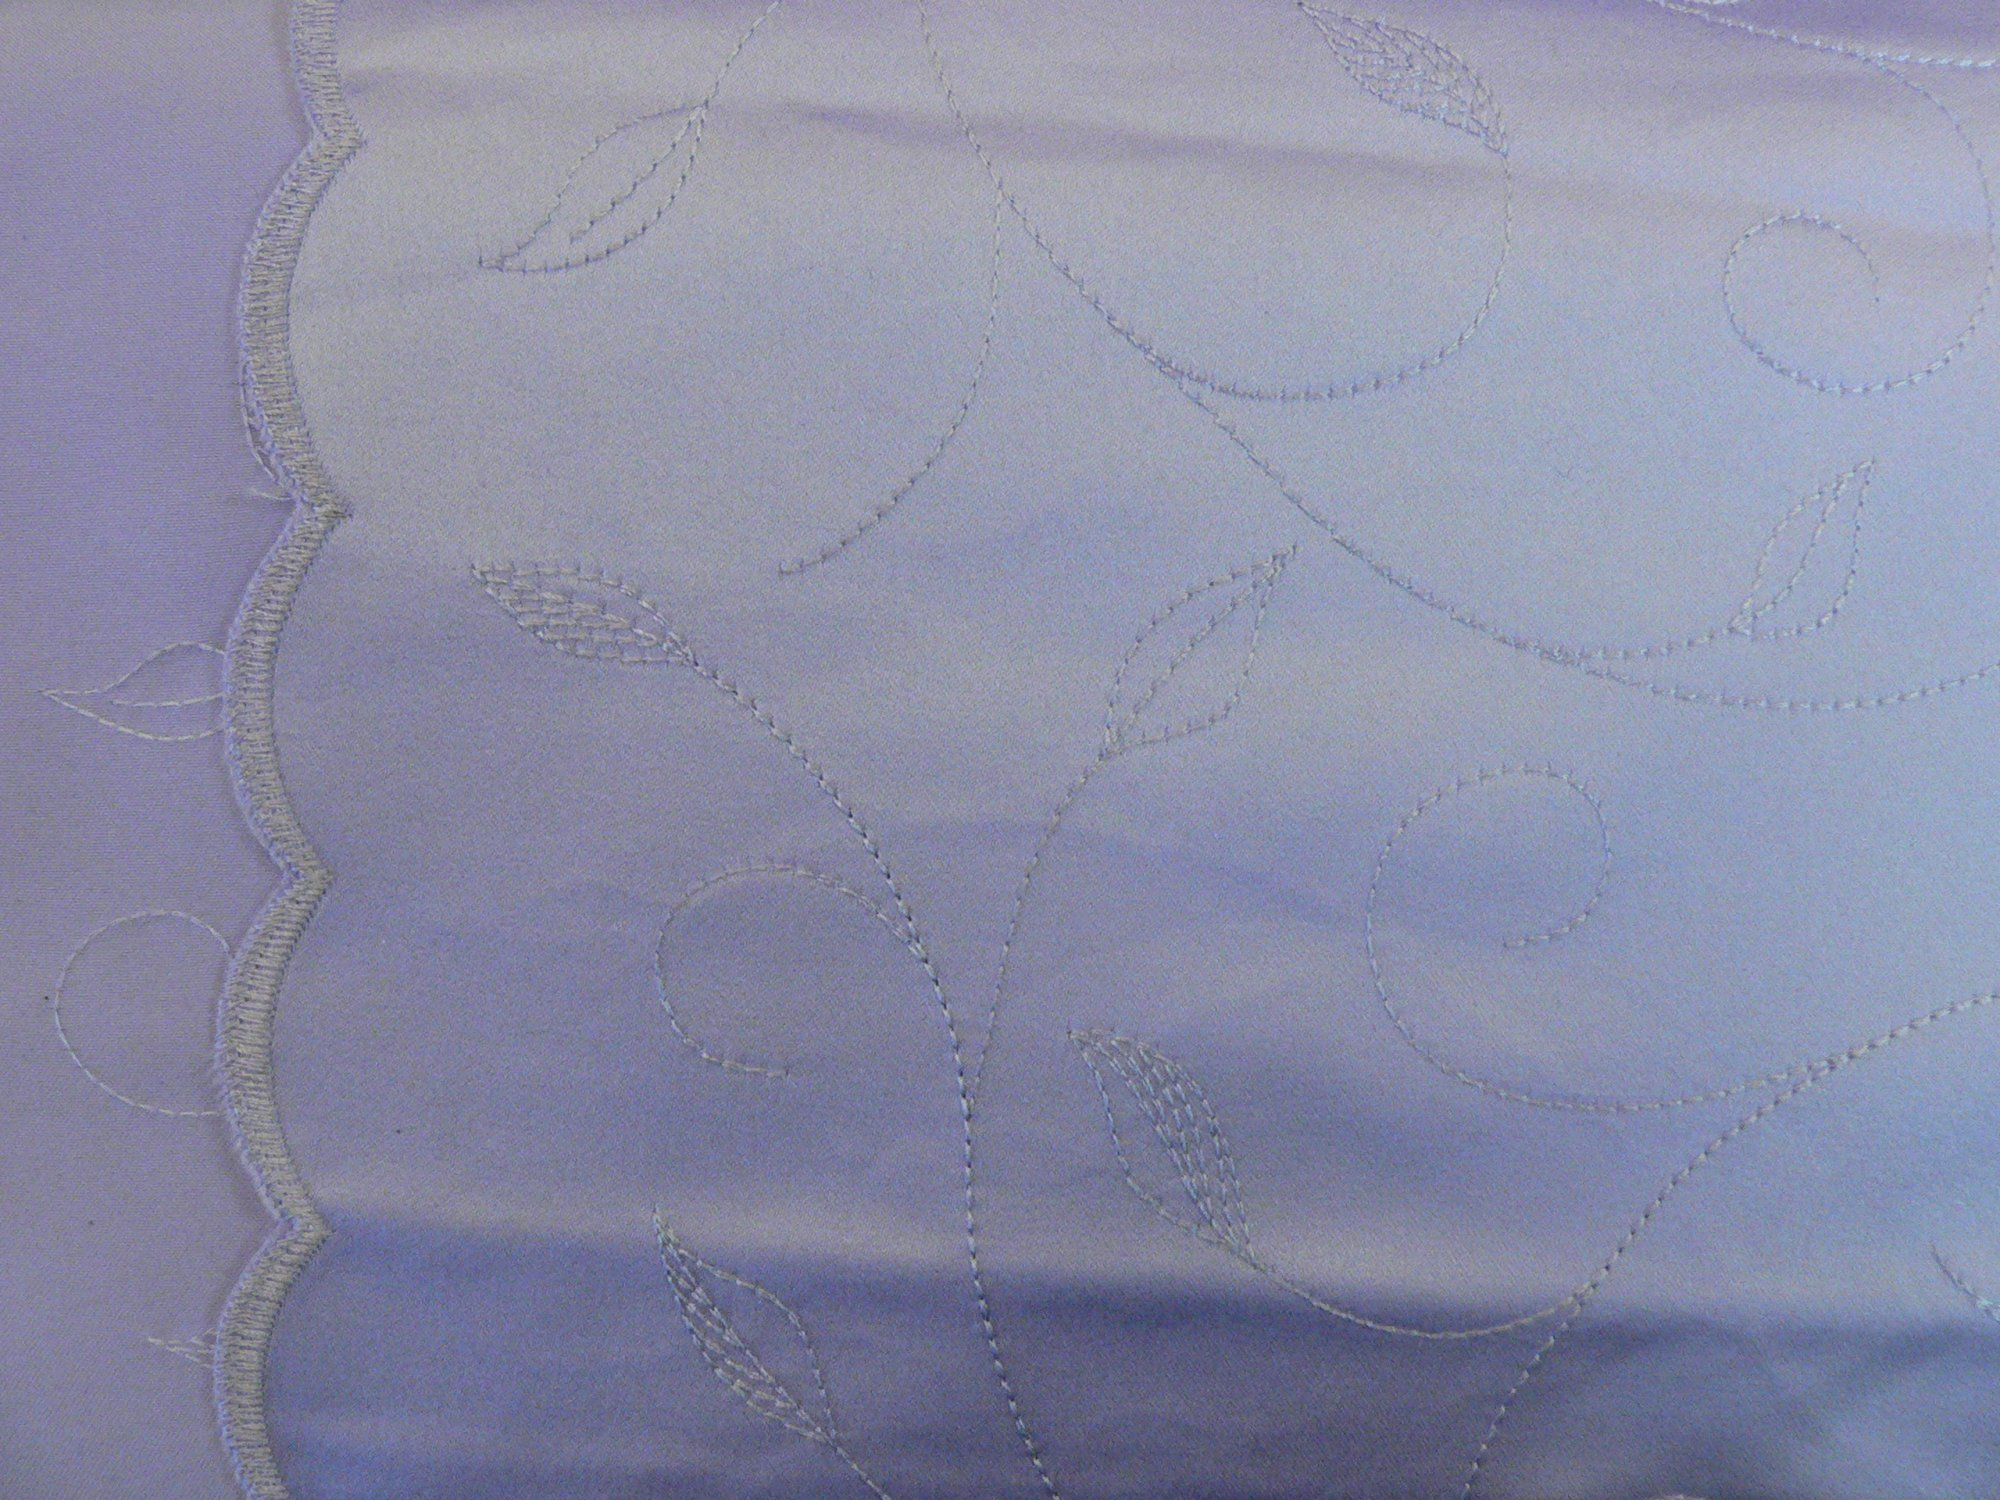 Satin, embroidered, double scalloped edge, lilac